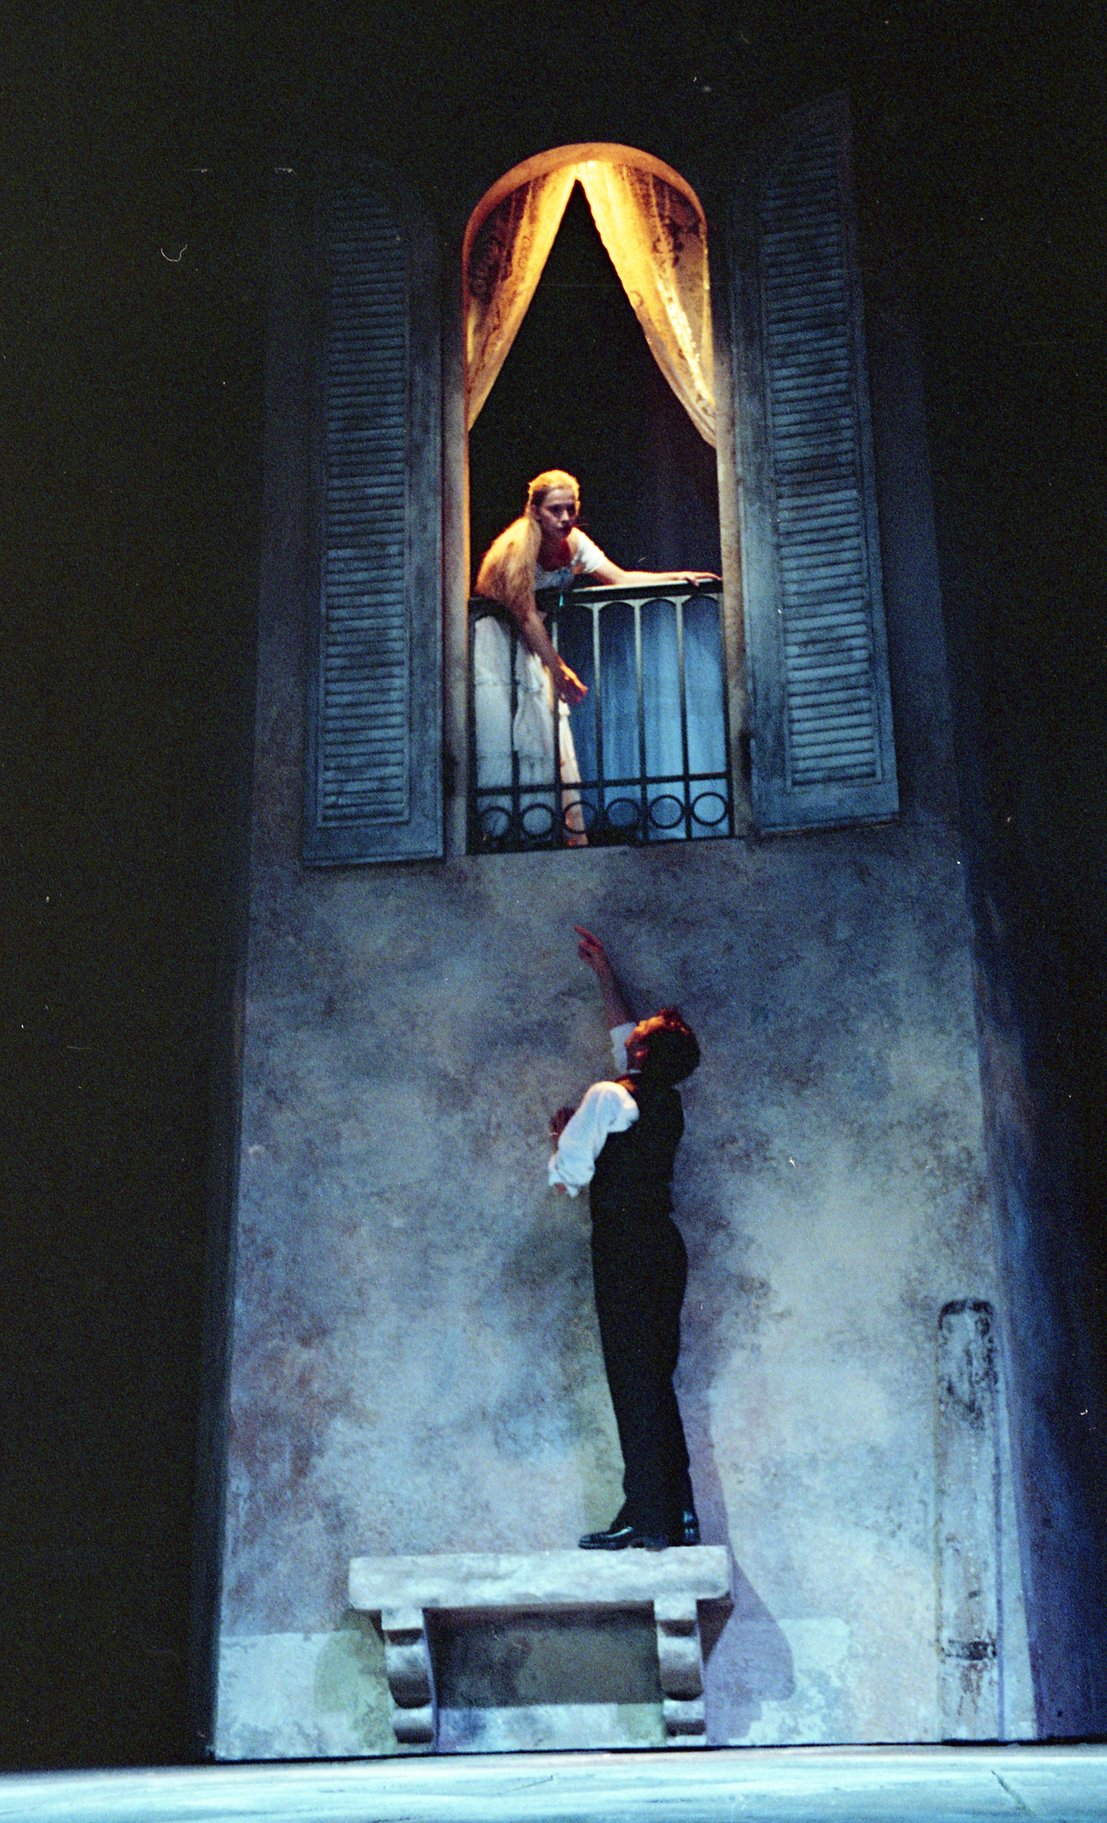 Romeo reaches up to Juliet, standing on a small bench to try and access her balcony and window.